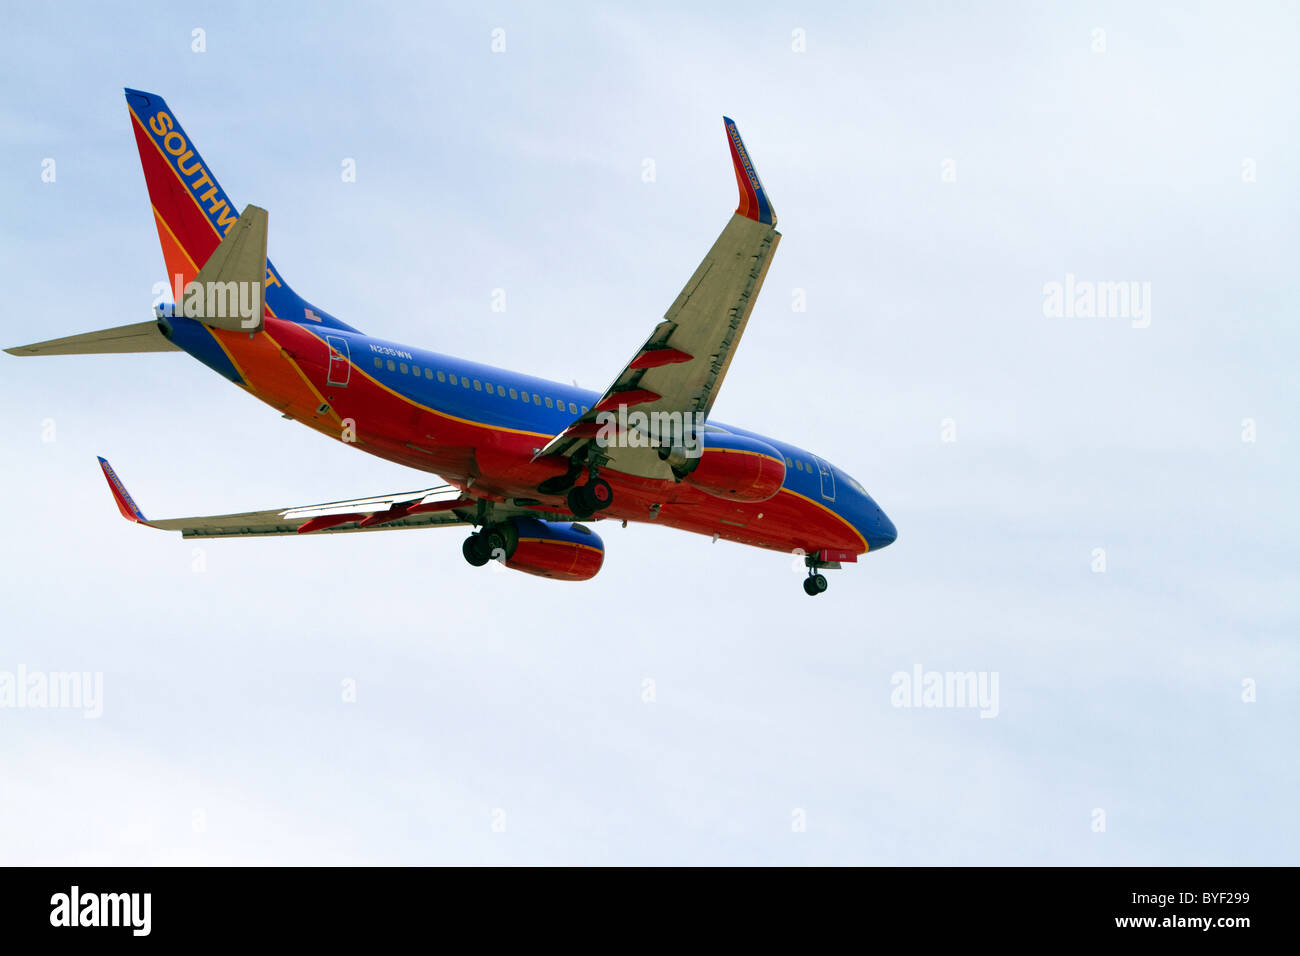 ea845ea5183c Southwest airlines Boeing 737 aircraft on final approach to the Boise  Airport